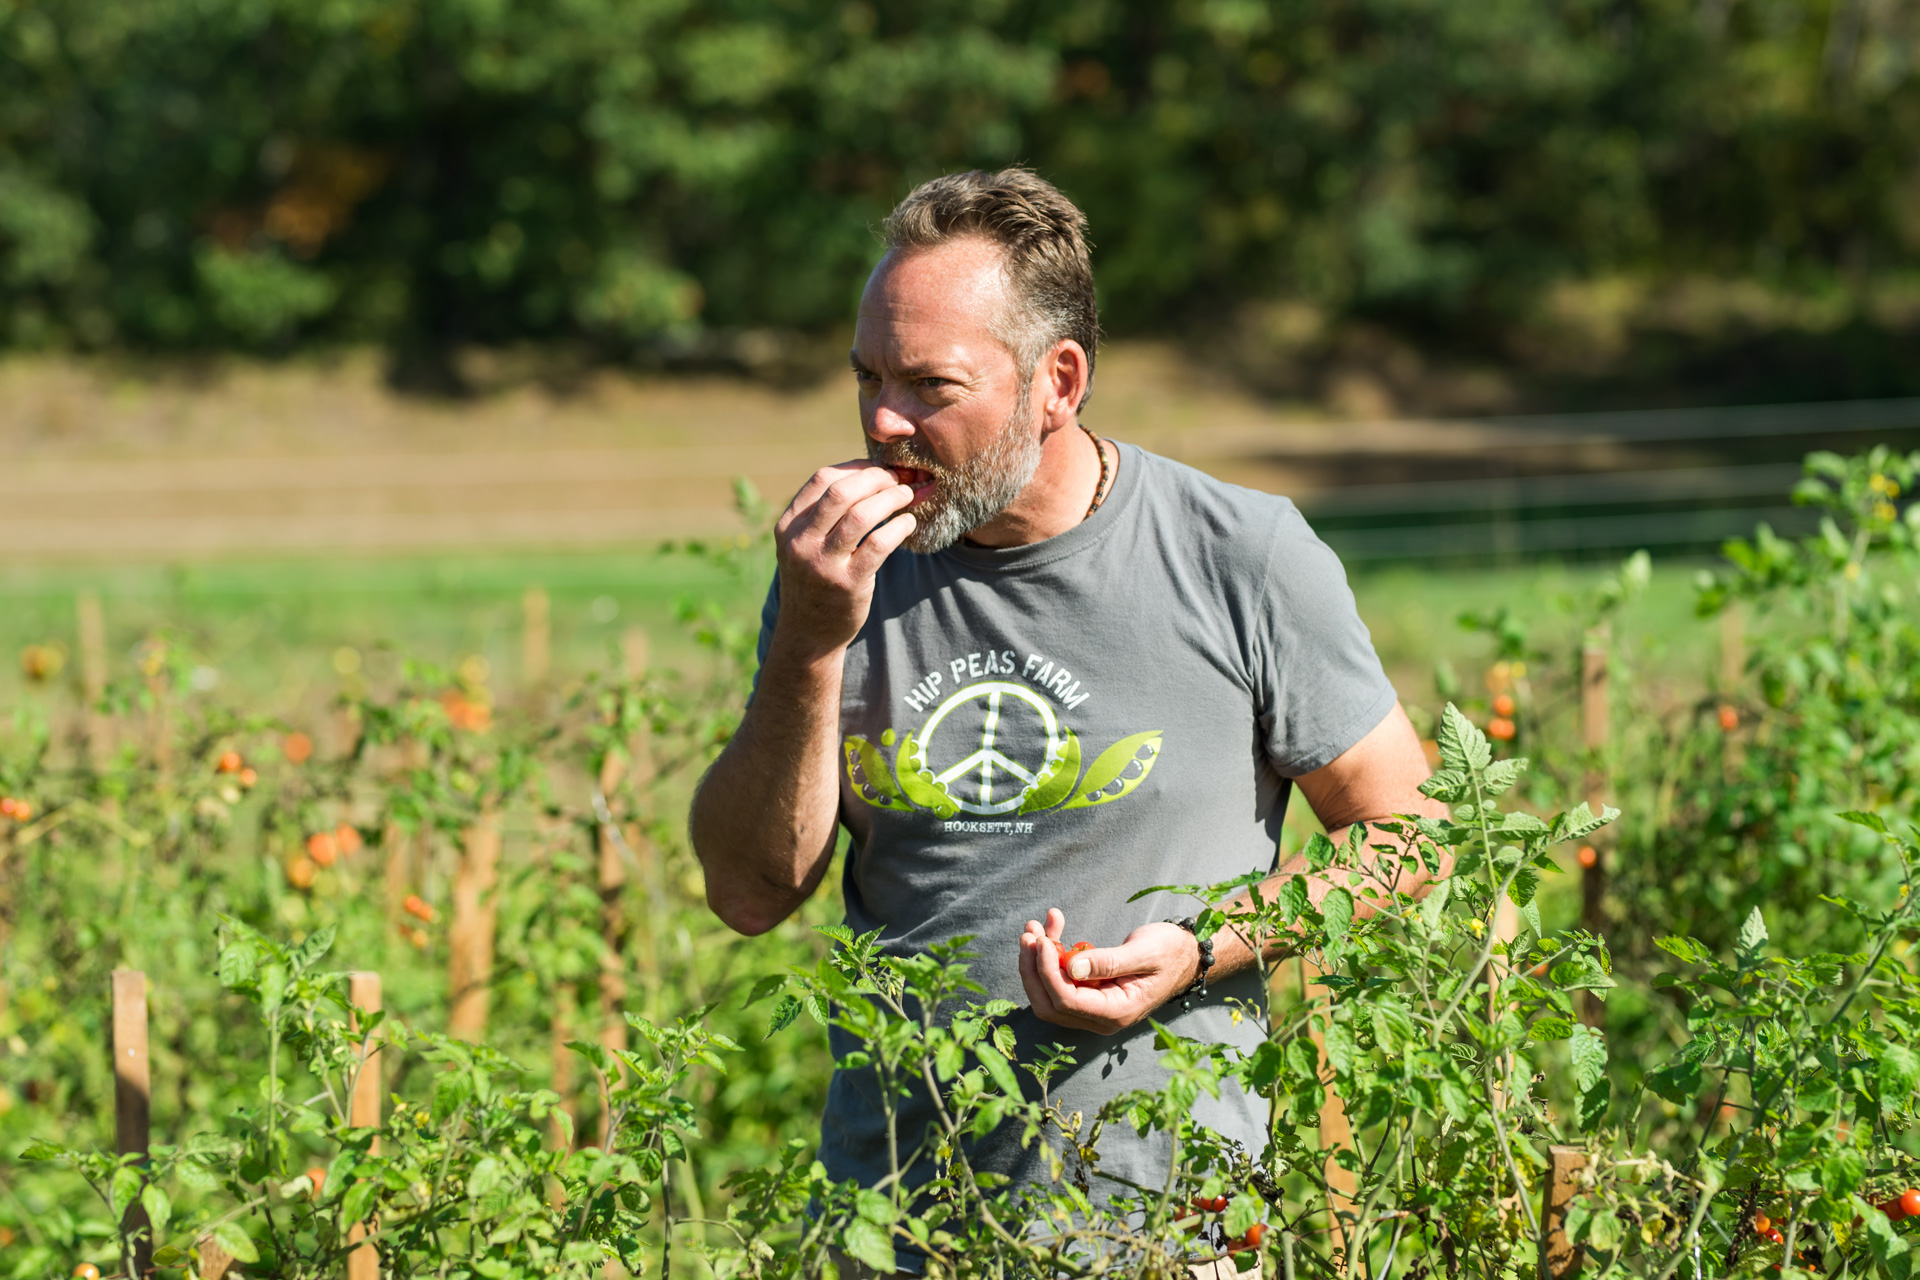 Man eating tomatoes in tomato field